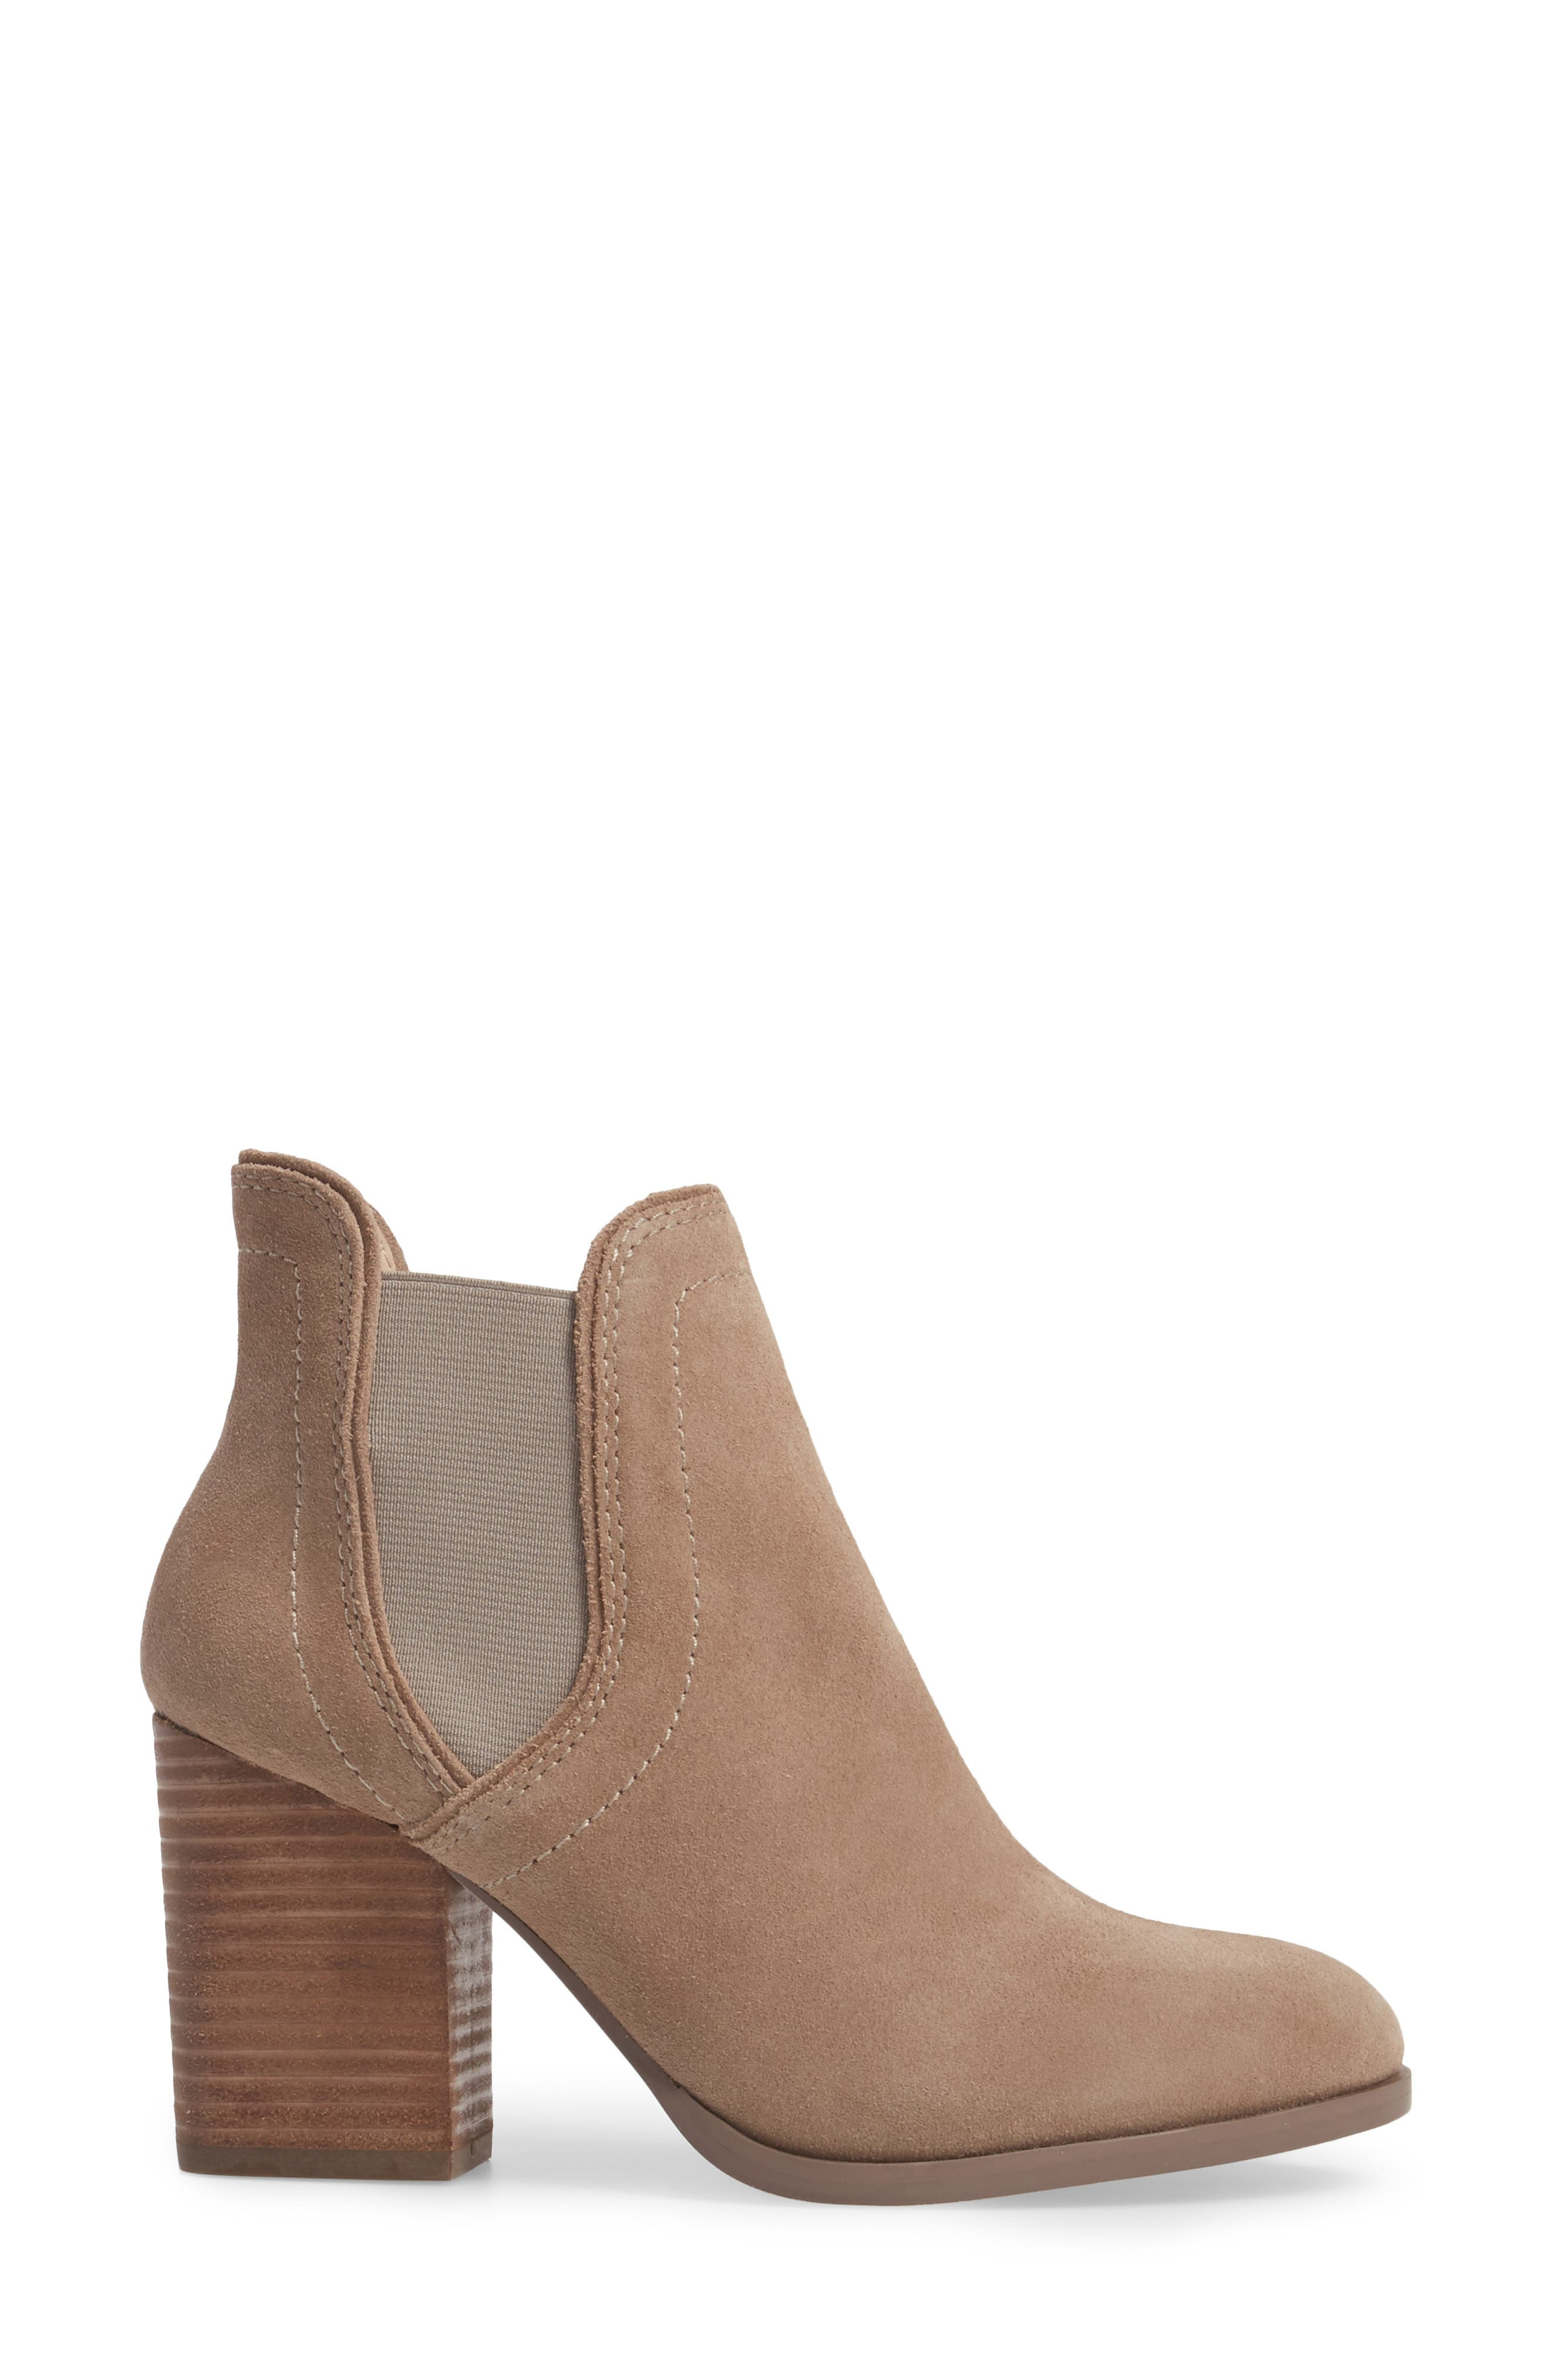 Carrillo Bootie,                             Alternate thumbnail 3, color,                             203